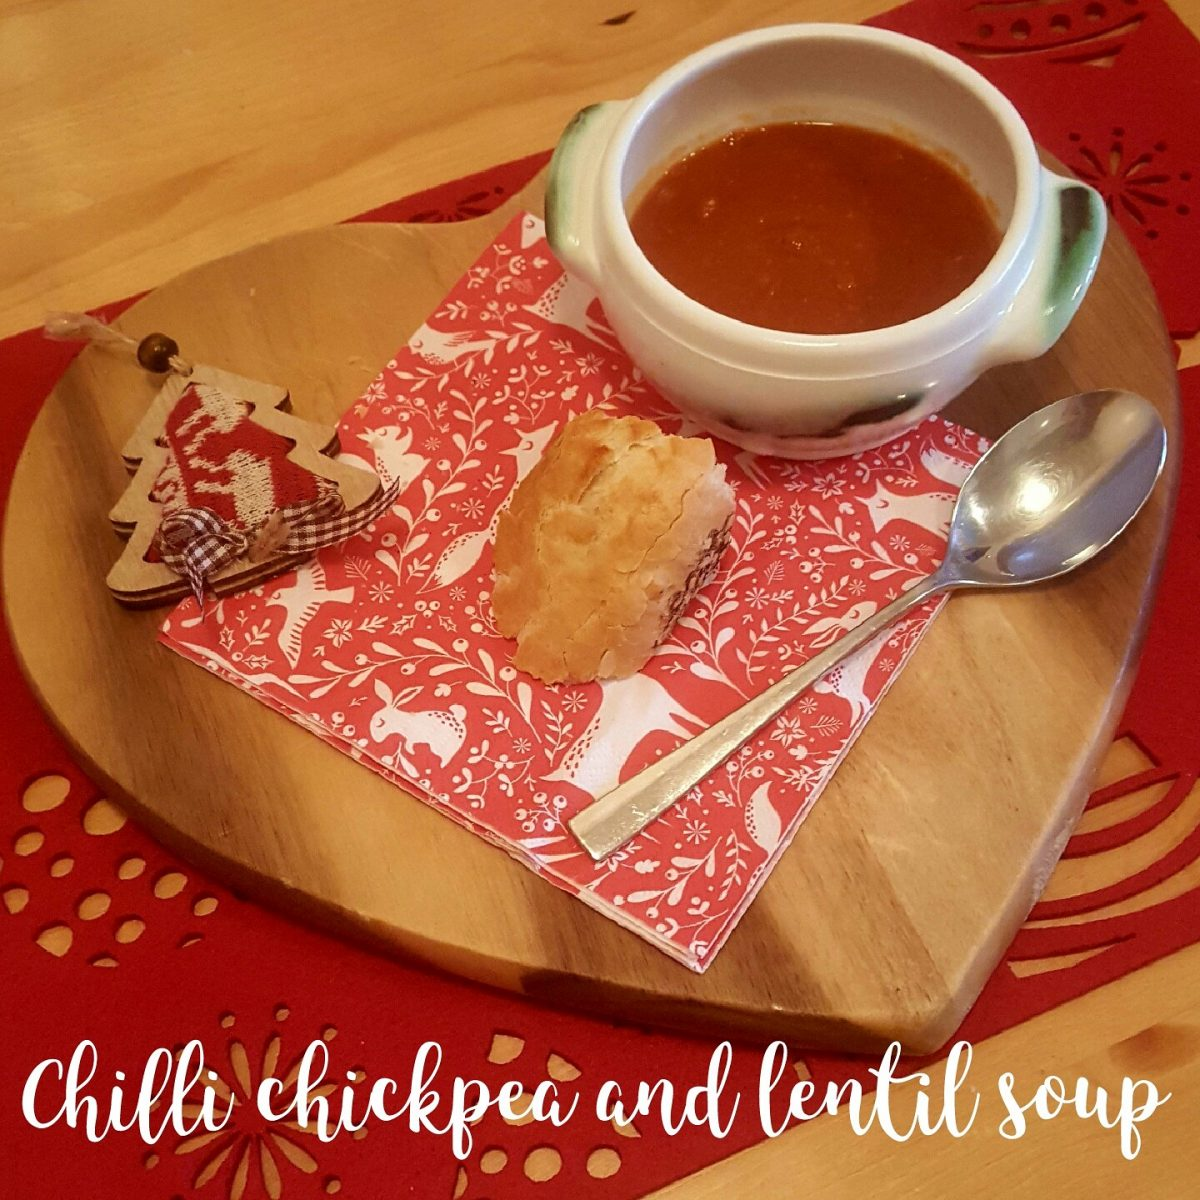 Chilli chickpea and lentil soup